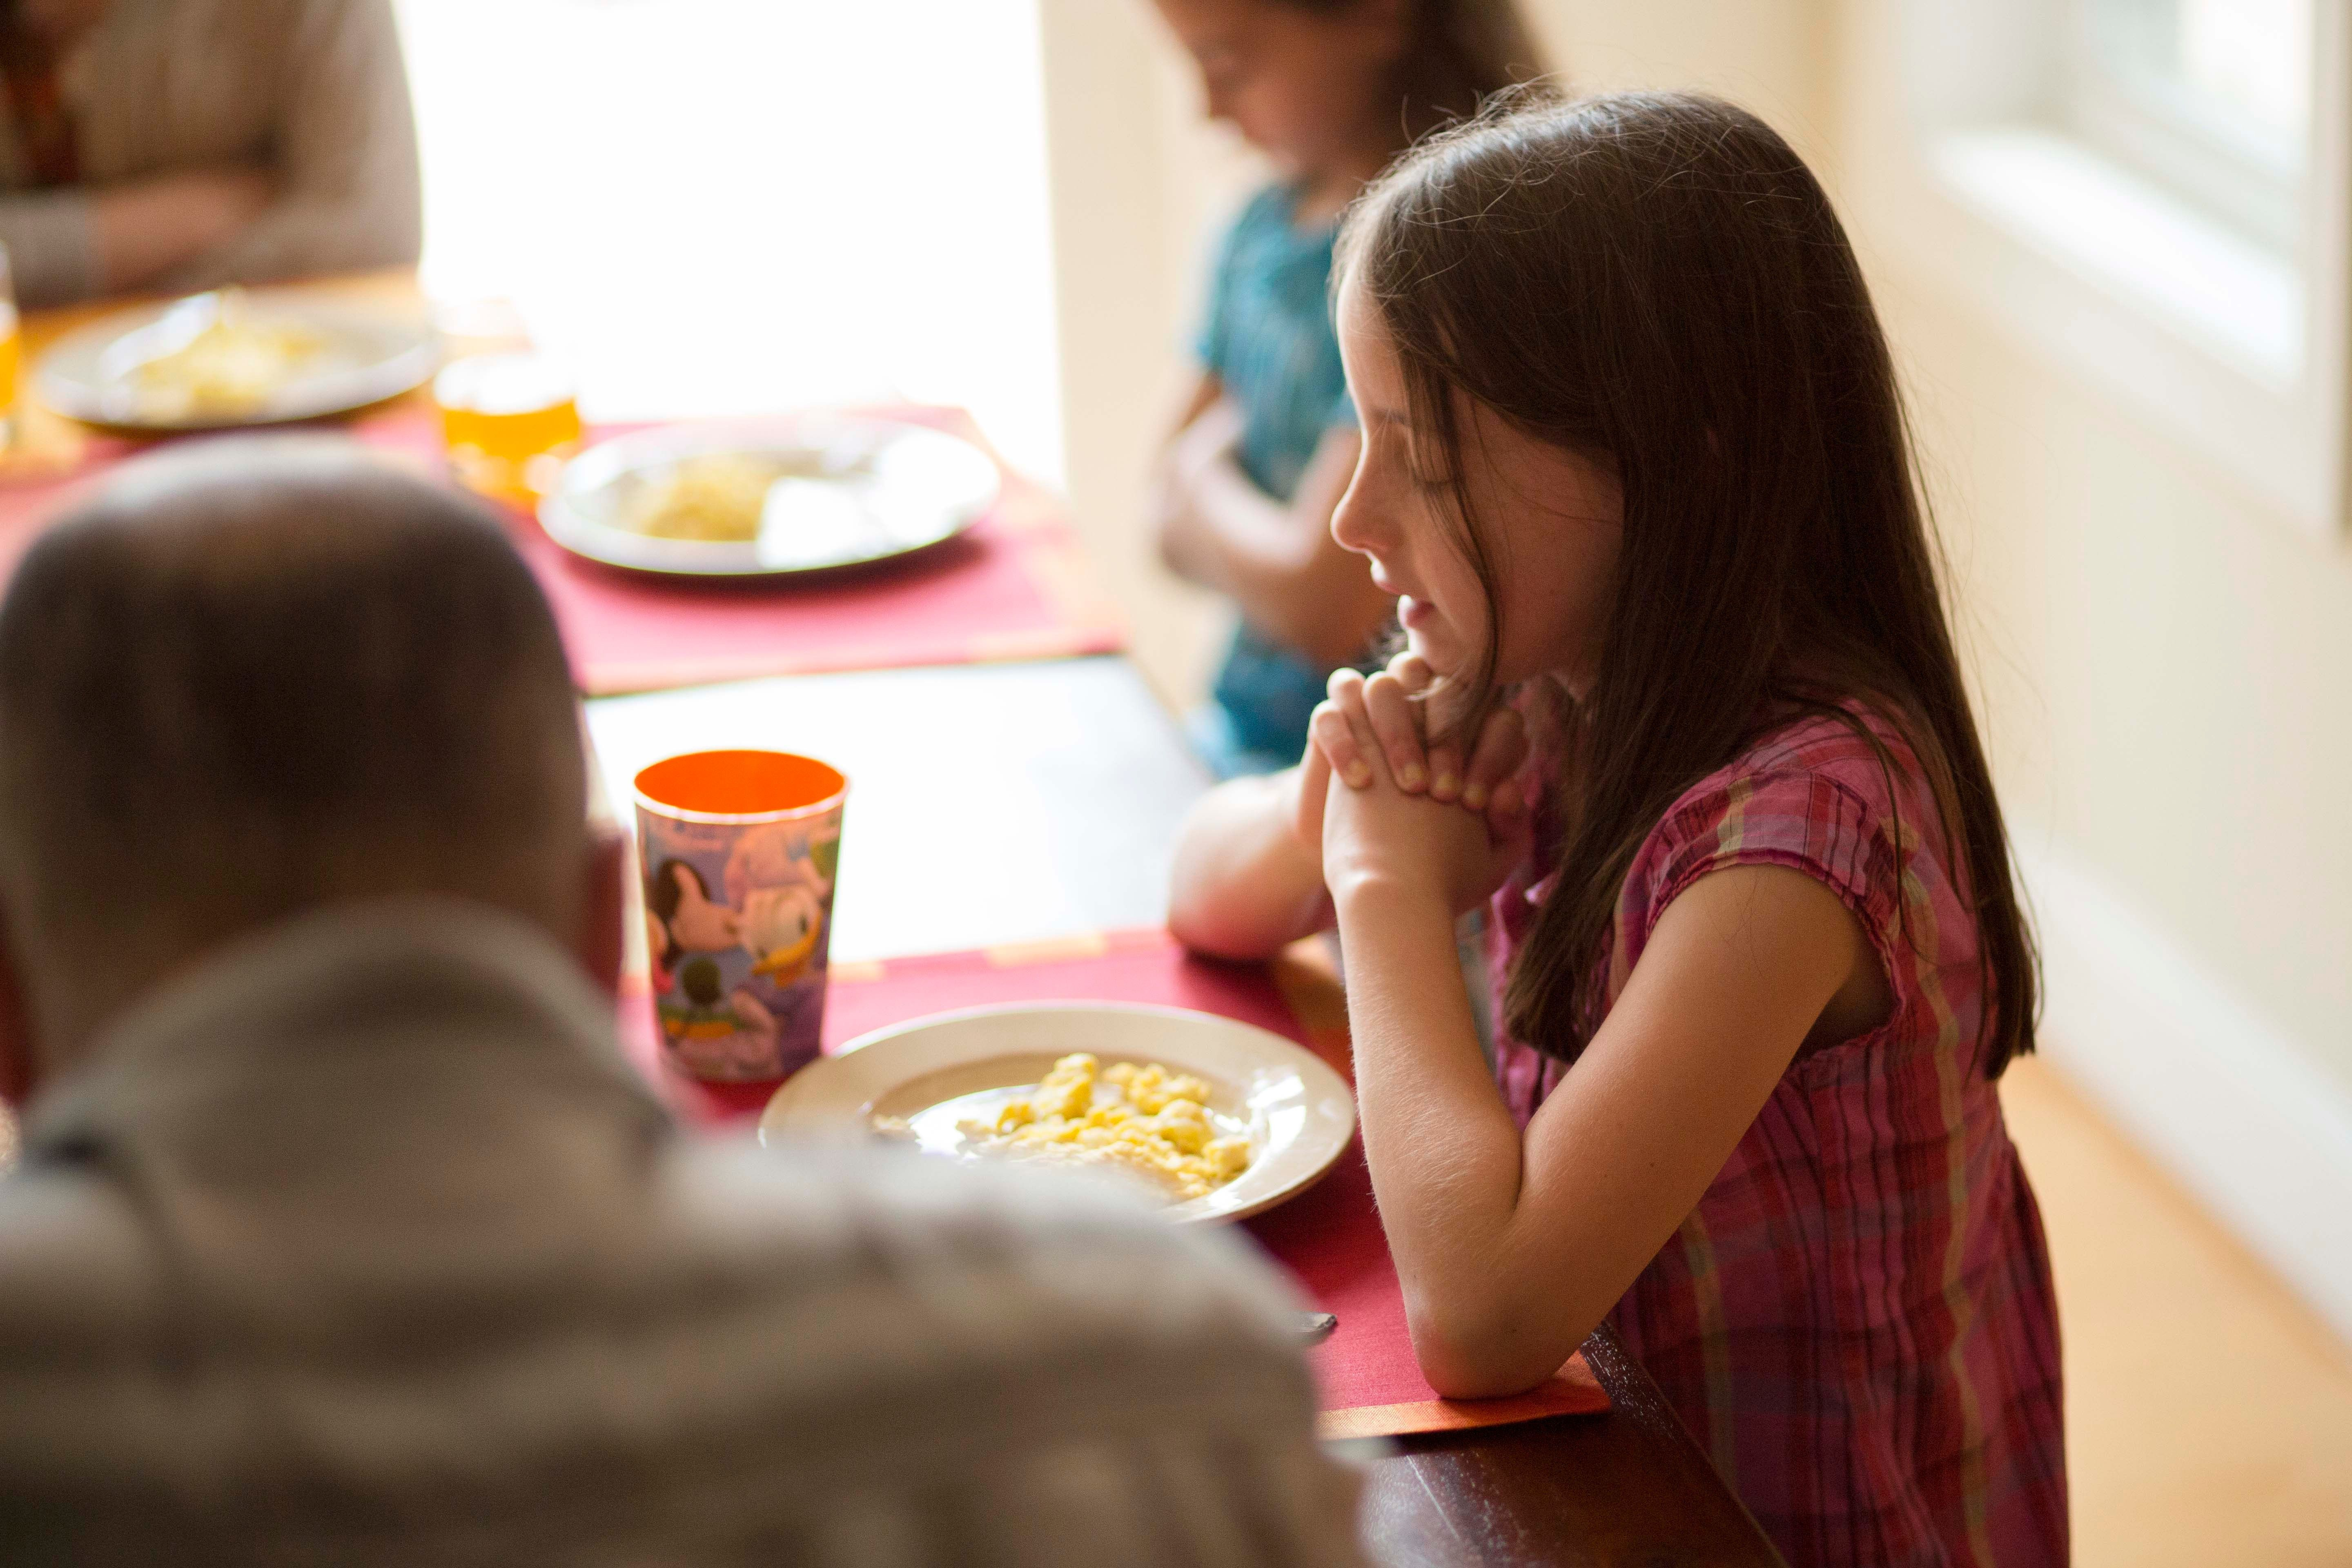 A little girl asks for a blessing on the food.